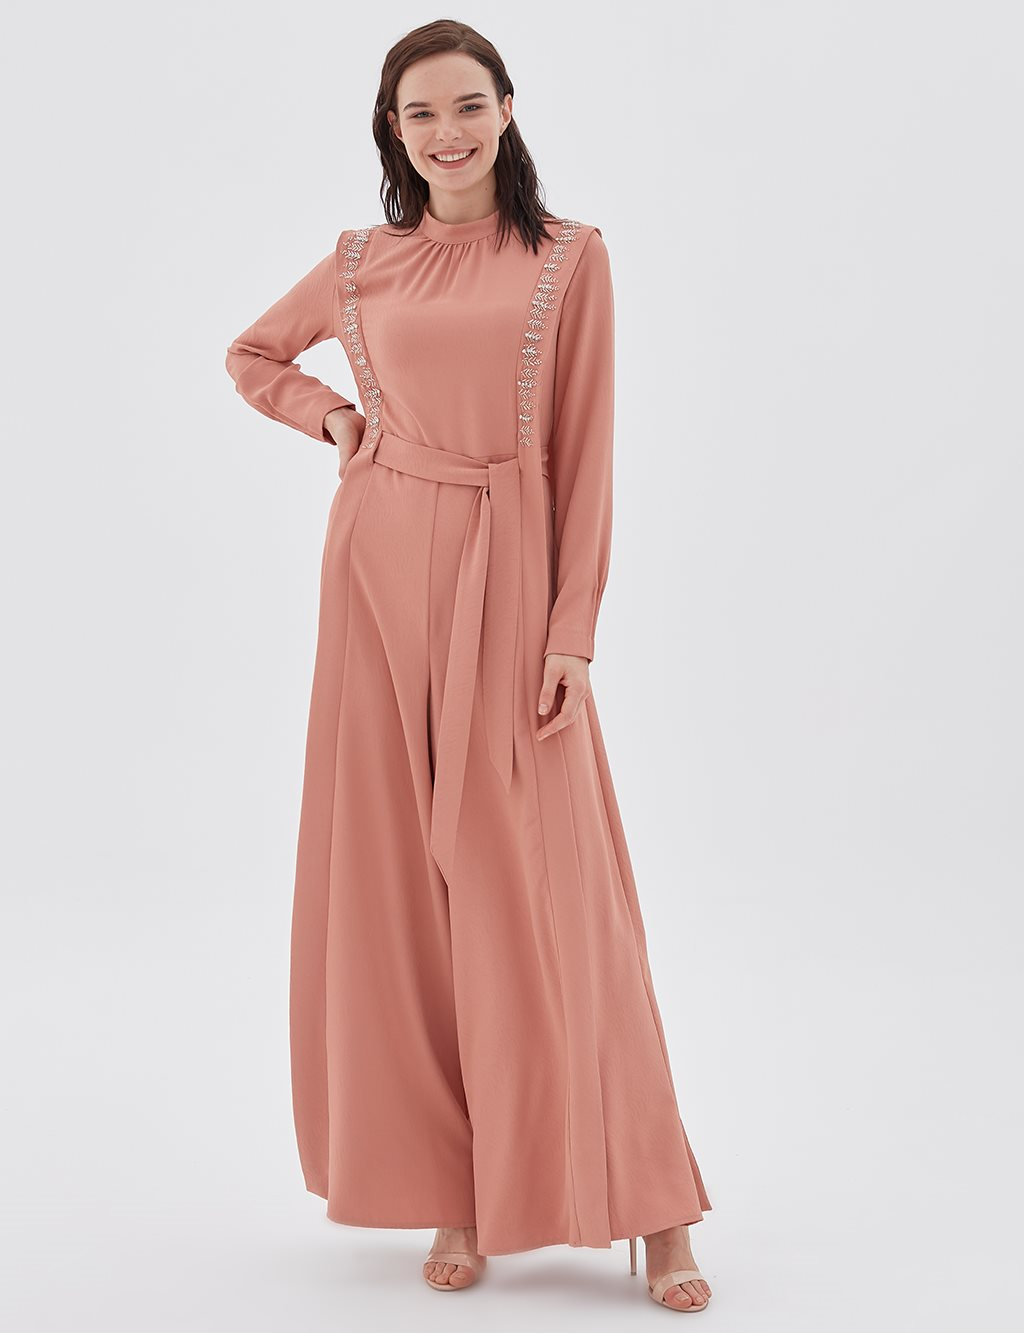 Embroidered Jumpsuit B20 22007 Light Pink